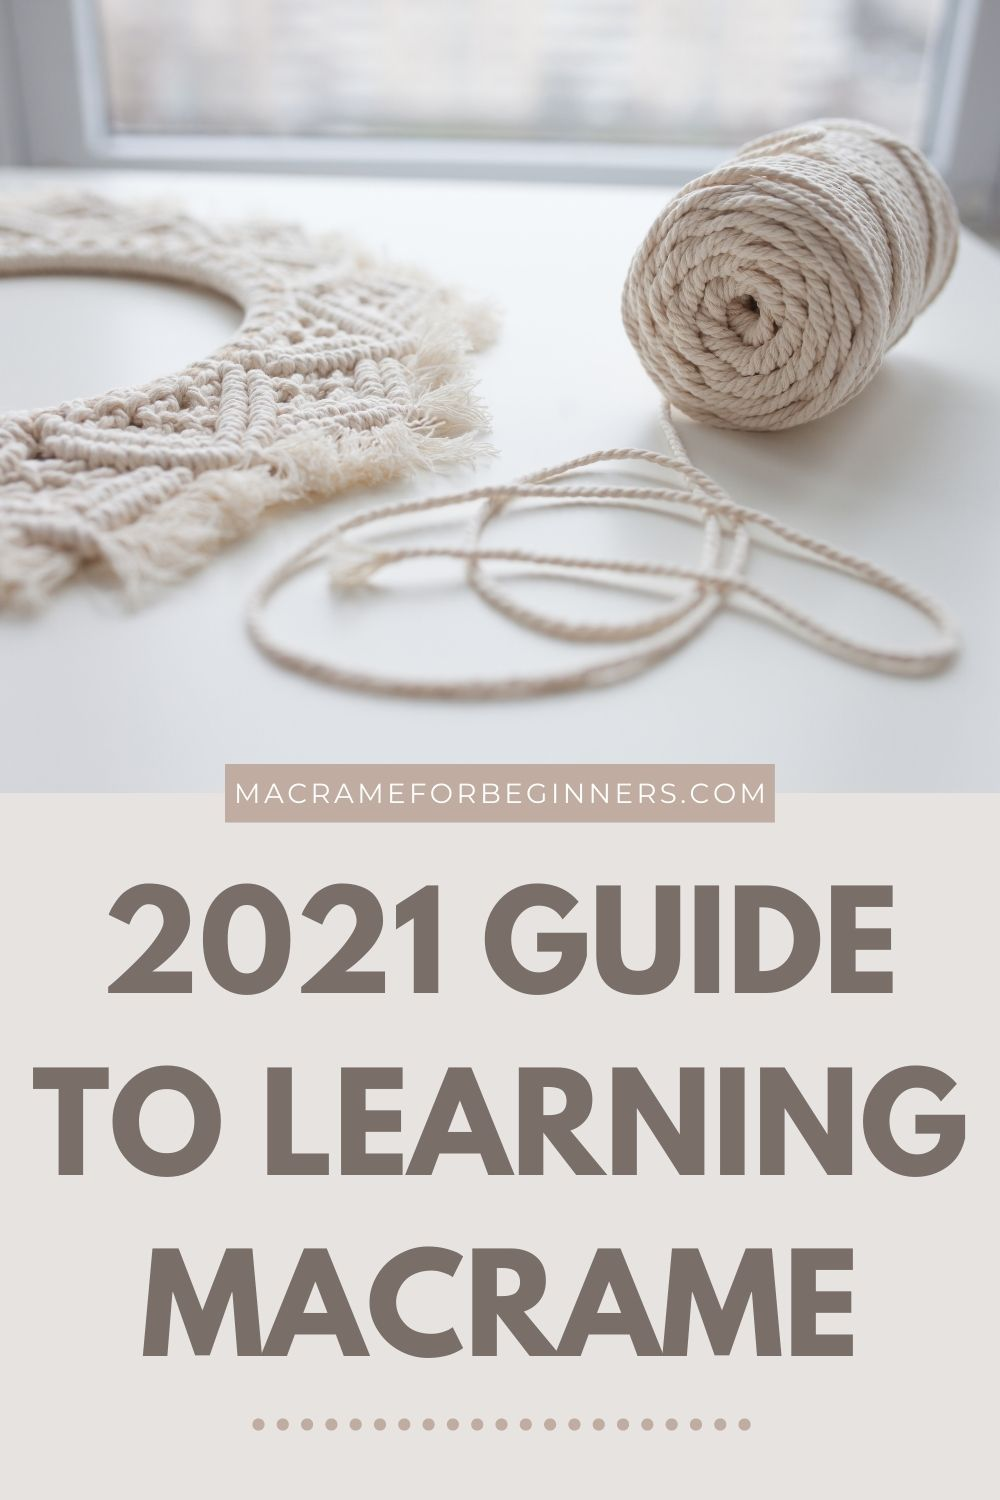 How to Start with Macrame in 2021 - A Complete Guide + Must-Have Macrame Supplies for Beginners 2